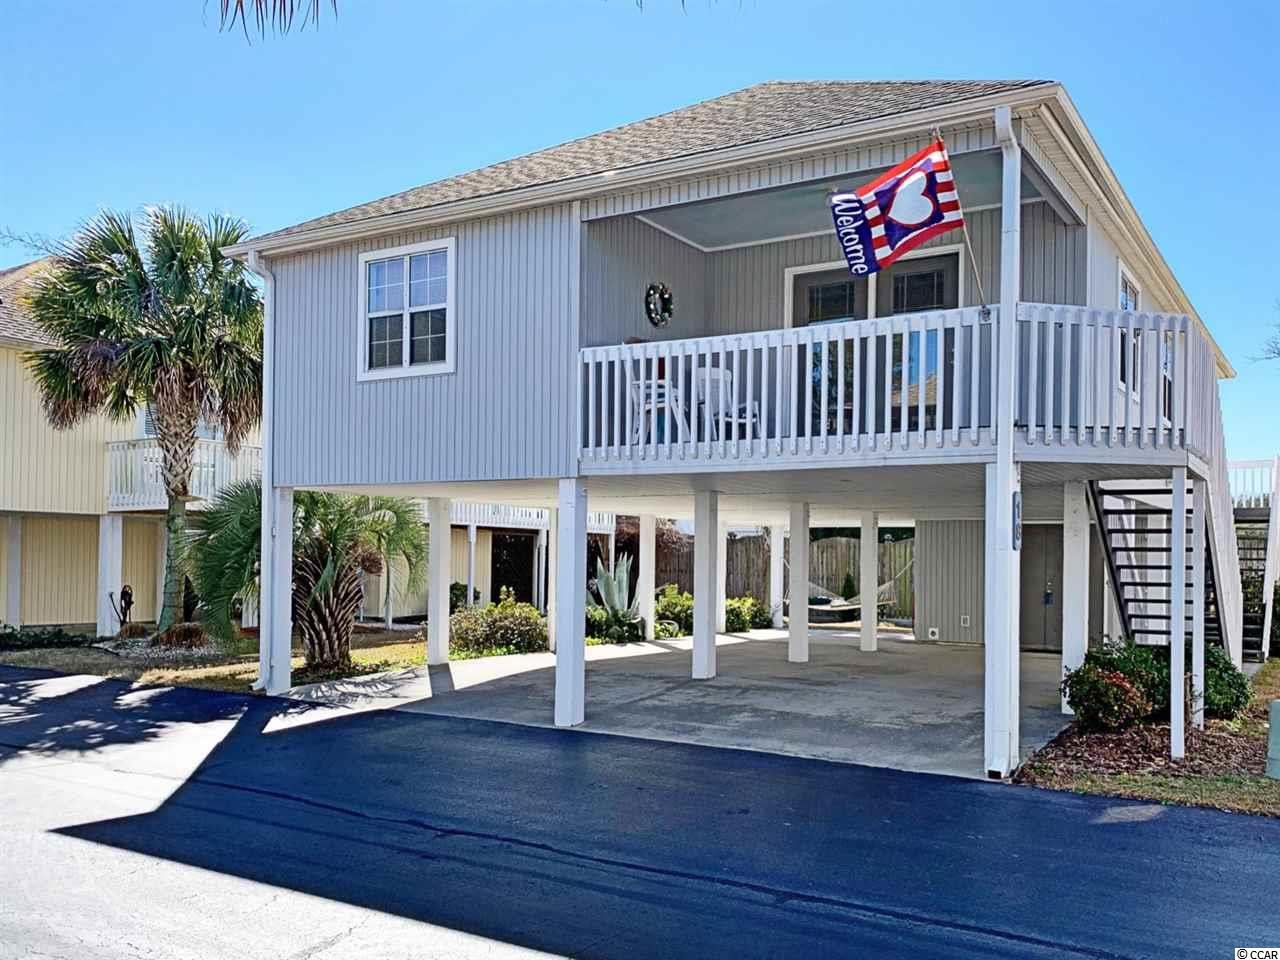 HOME IS WHERE THE OCEAN IS. This meticulously presented, raised-beach home in the private community of Willow Creek is ready to be enjoyed NOW as a primary residence, vacation getaway or the perfect investment opportunity equipped for sun-seeking renters. Maintained with love and attention by the original home owners, the 3 bedroom and 2 bath home has space to sleep 10 adults comfortably, comes partially furnished and decorated, includes all appliances, including a full sized washer and dryer and has always been used solely for the owner's enjoyment. The raised beach home offers plenty of covered parking, as well as a storage area complete with a separate shower and bathroom. Wash the sand off before going inside with the outdoor shower located by the two sets of stairs leading up to the house. This charming community offers a private swimming pool, picnic tables and is a golf cart ride away from the Atlantic Ocean in North Myrtle Beach.